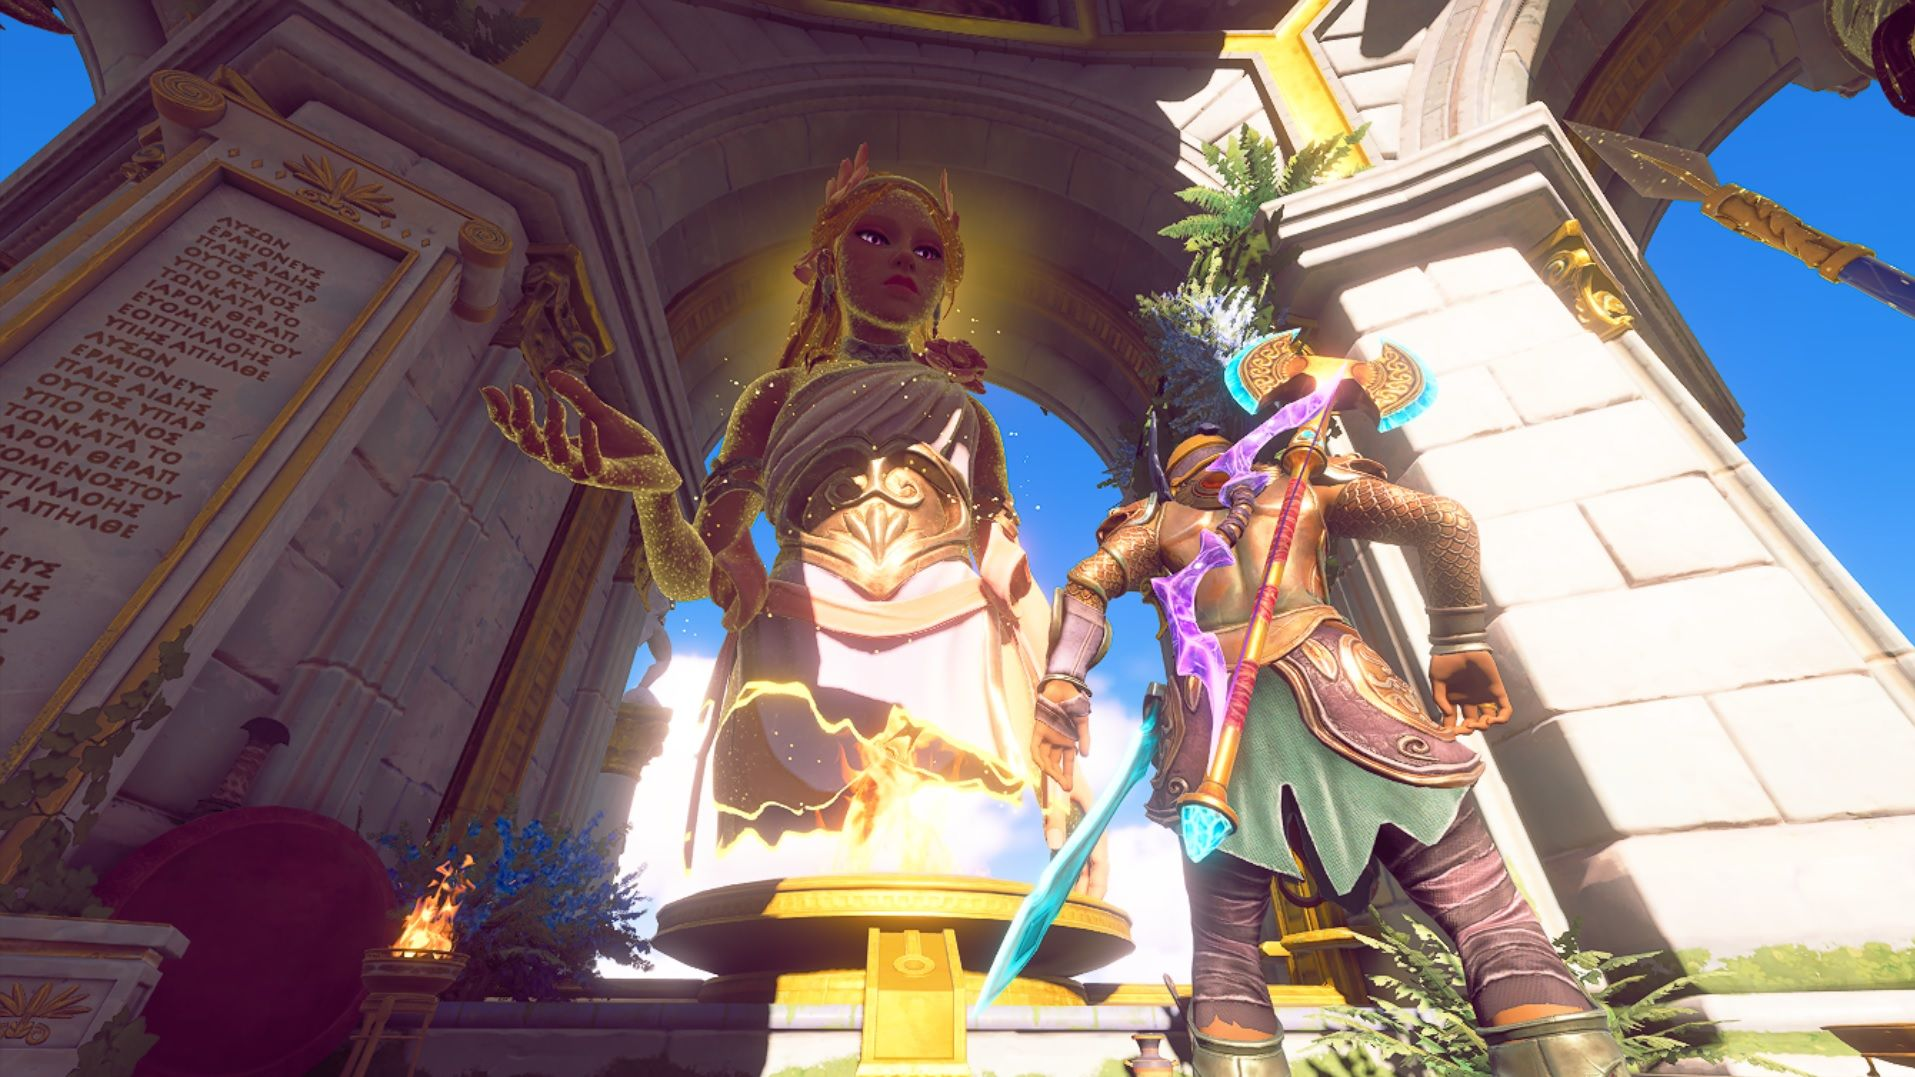 A screenshot of god-mode Aphrodite, from the angle of the floor, which is where Fenyx is standing. Aphrodite is blonde with purple eyes, and is wearing a flower crown and one-shoulder tunic with a large gold metal corset belt